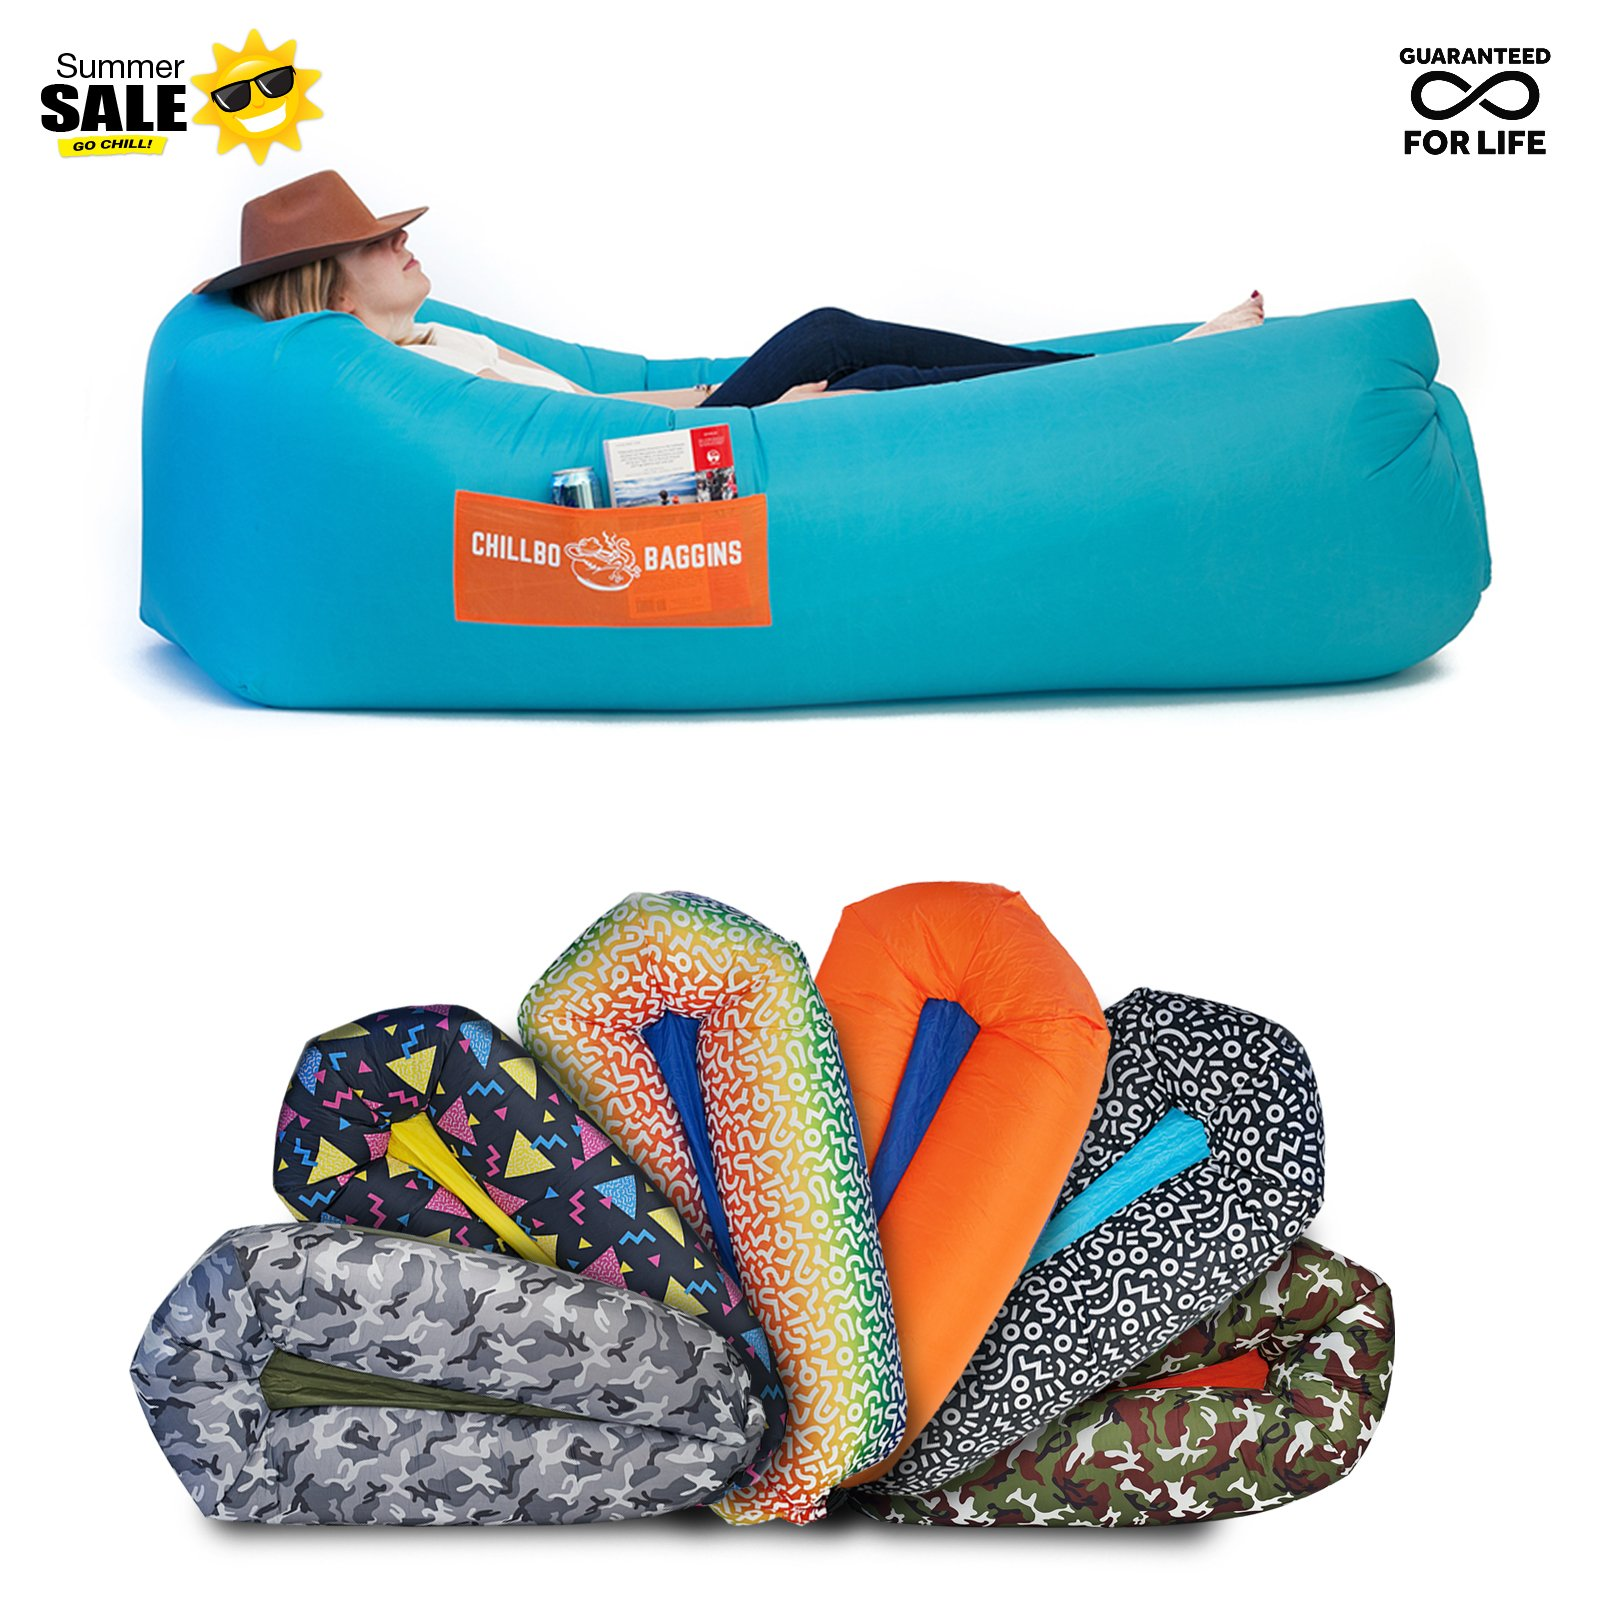 CHILLBO SHWAGGINS Baggins Best Inflatable Lounger Hammock Air Sofa And Pool  Float Ships Fast! IDEAL OUTDOOR GIFT Air Lounger For Indoor Or Outdoor Use  Or ...